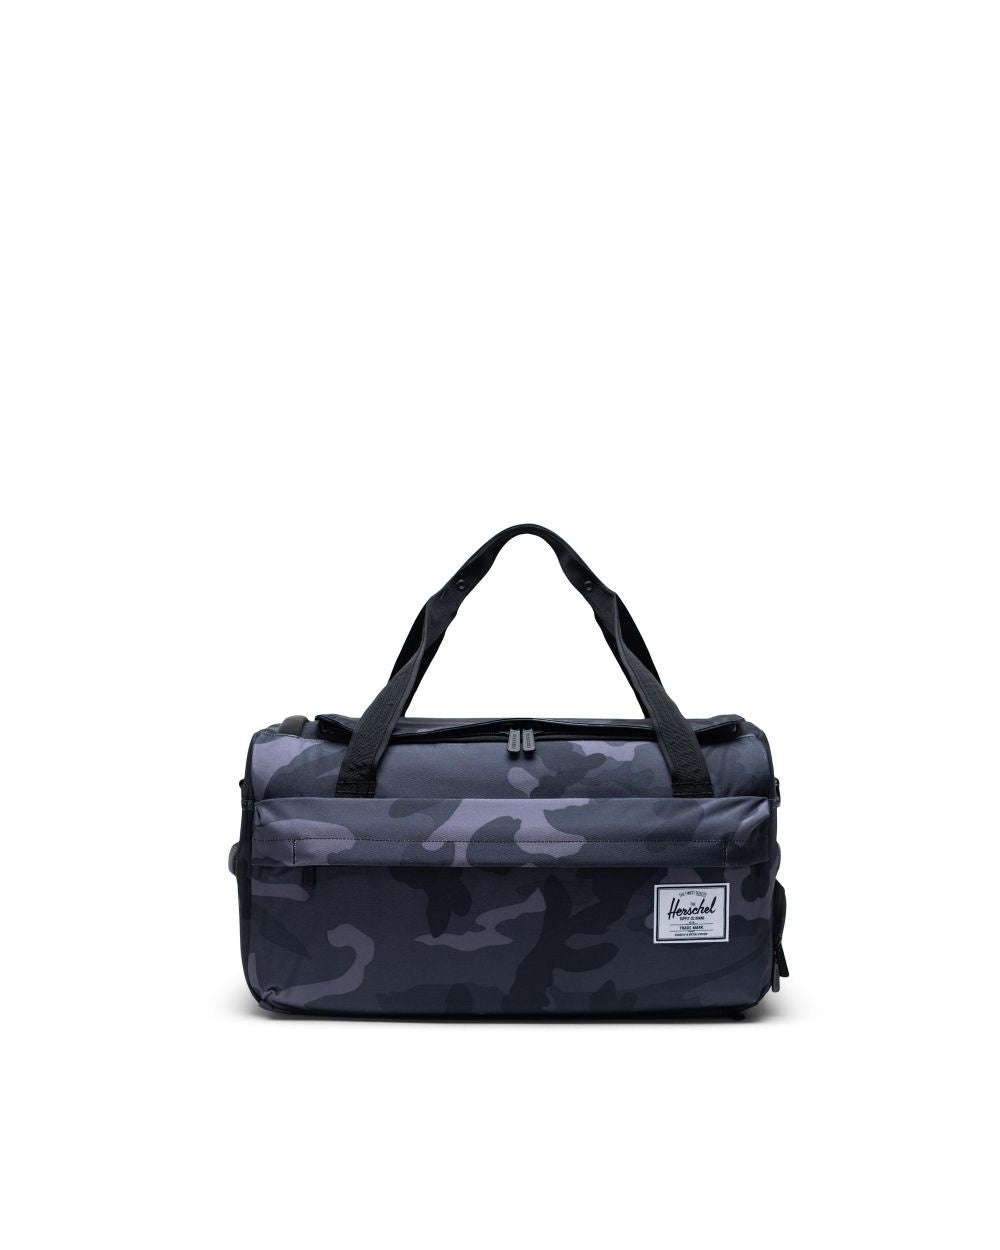 HERSCHEL - OUTFITTER LUGGAGE 30L IN NIGHT CAMO